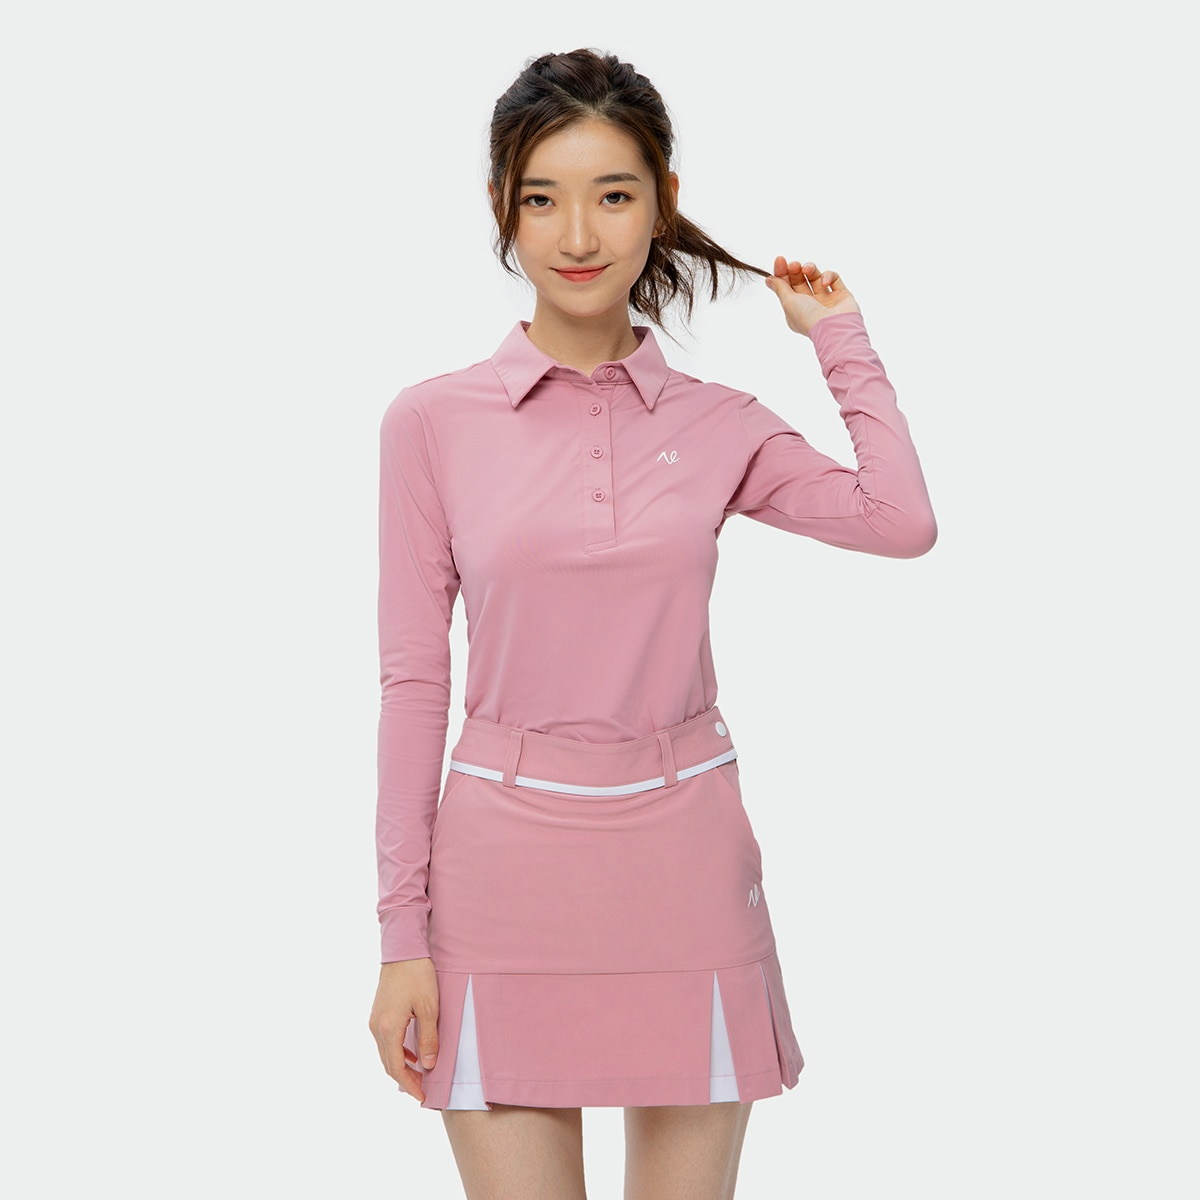 2021  NETLS Golf Elasticity Fabric Autumn Ladies Golf Wear Suits, Long Sleeves and Short Skirt Suits, Golf Clothing for Women